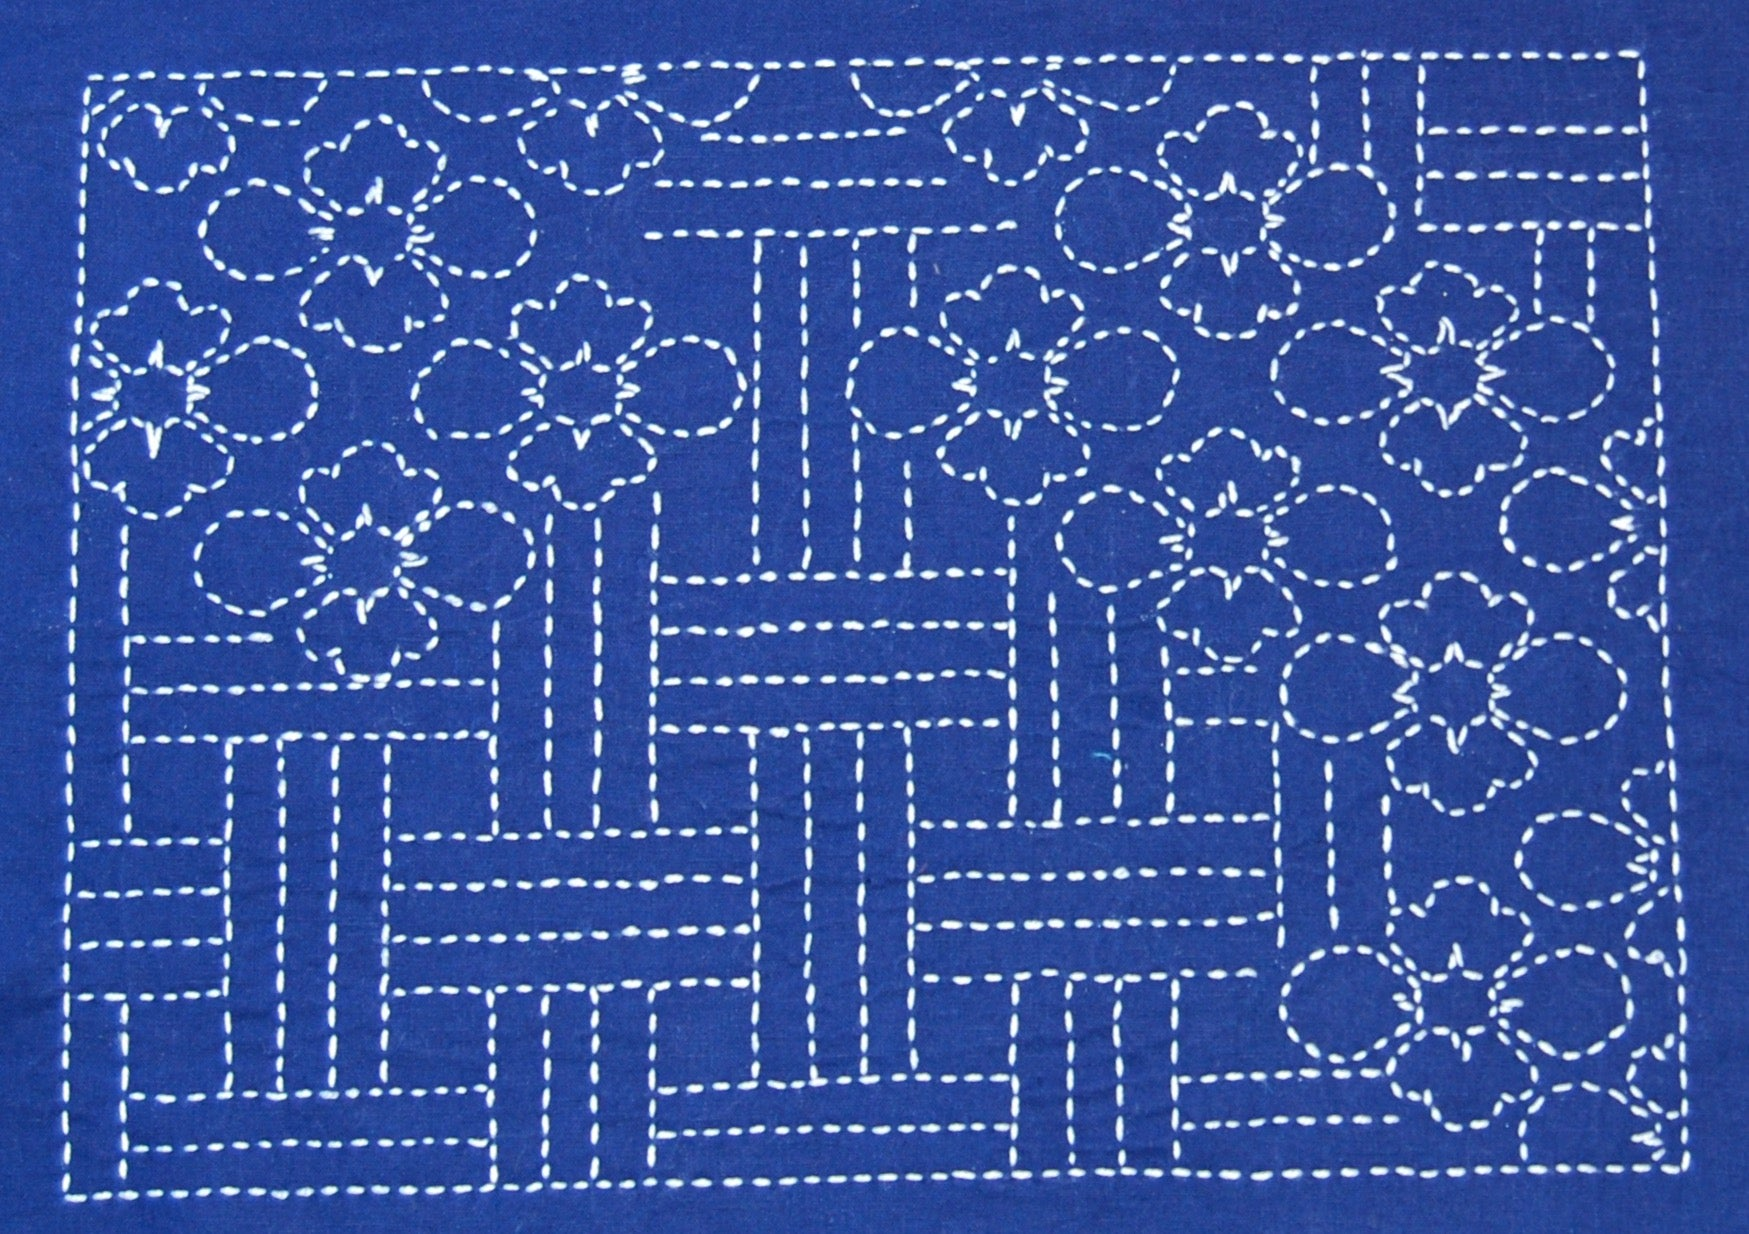 digital sashiko pattern lotus design